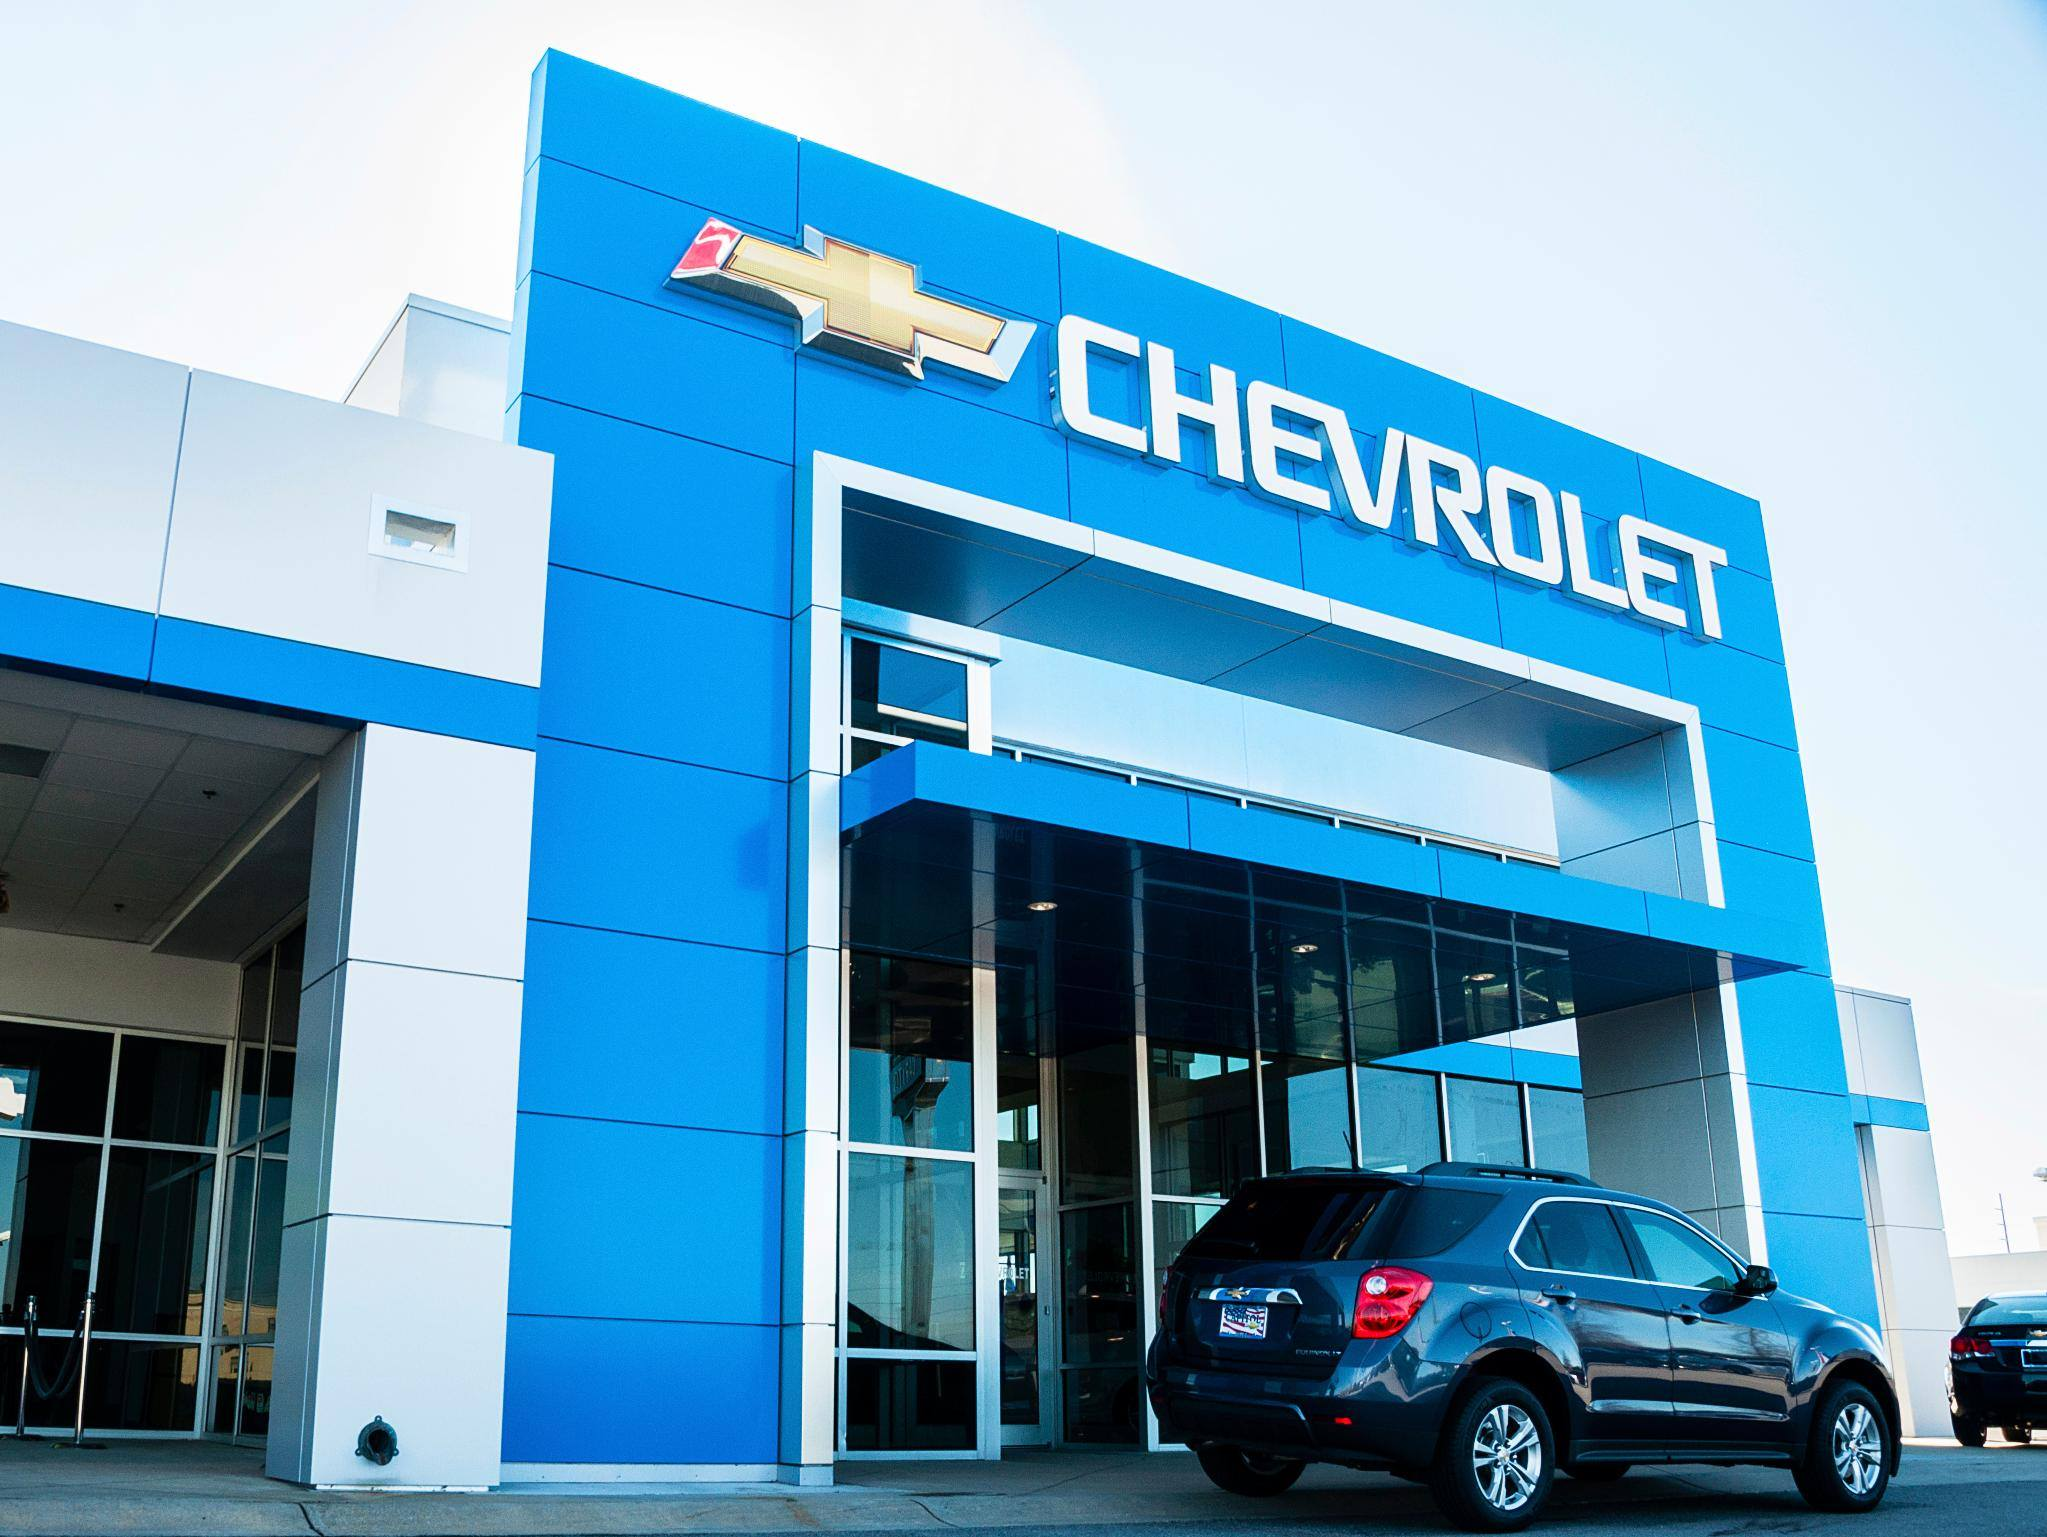 columbia chevrolet auto repair shop capitol chevrolet columbia. Cars Review. Best American Auto & Cars Review